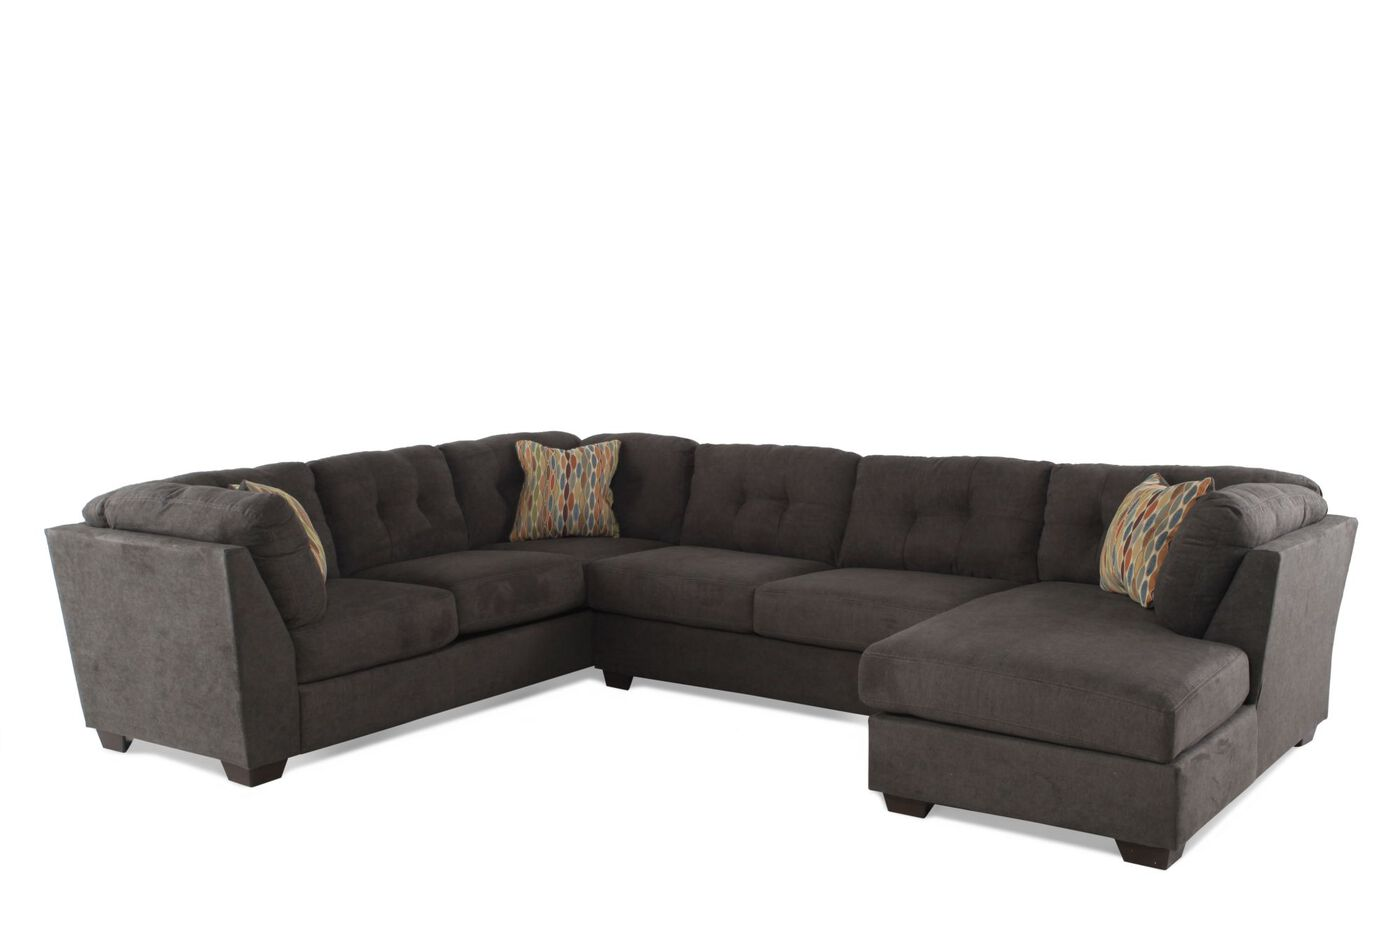 Three-Piece Microfiber Sectional in Chocolate Brown | Mathis ...